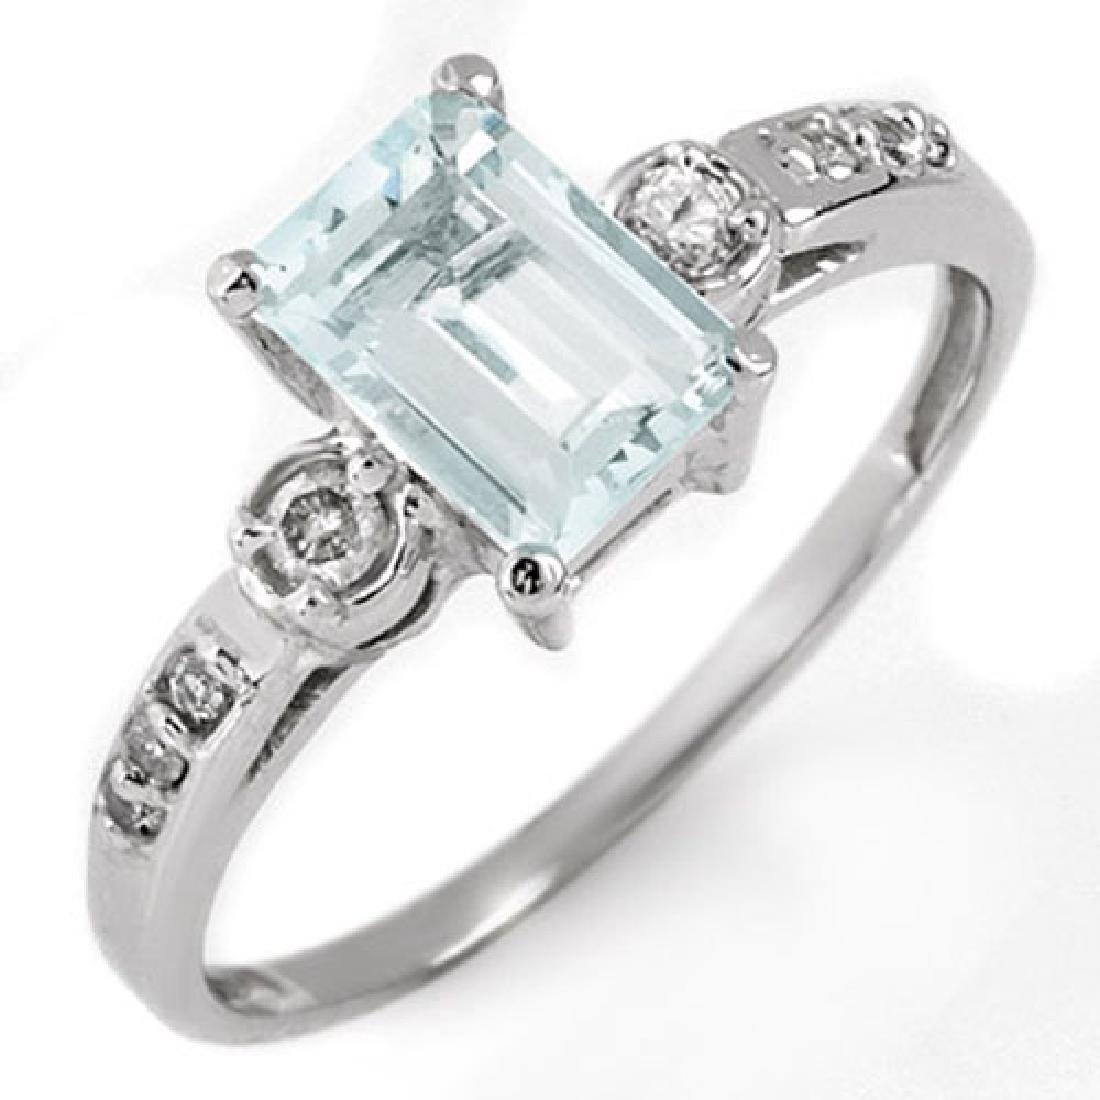 1.20 CTW Aquamarine & Diamond Ring 10K White Gold - 2